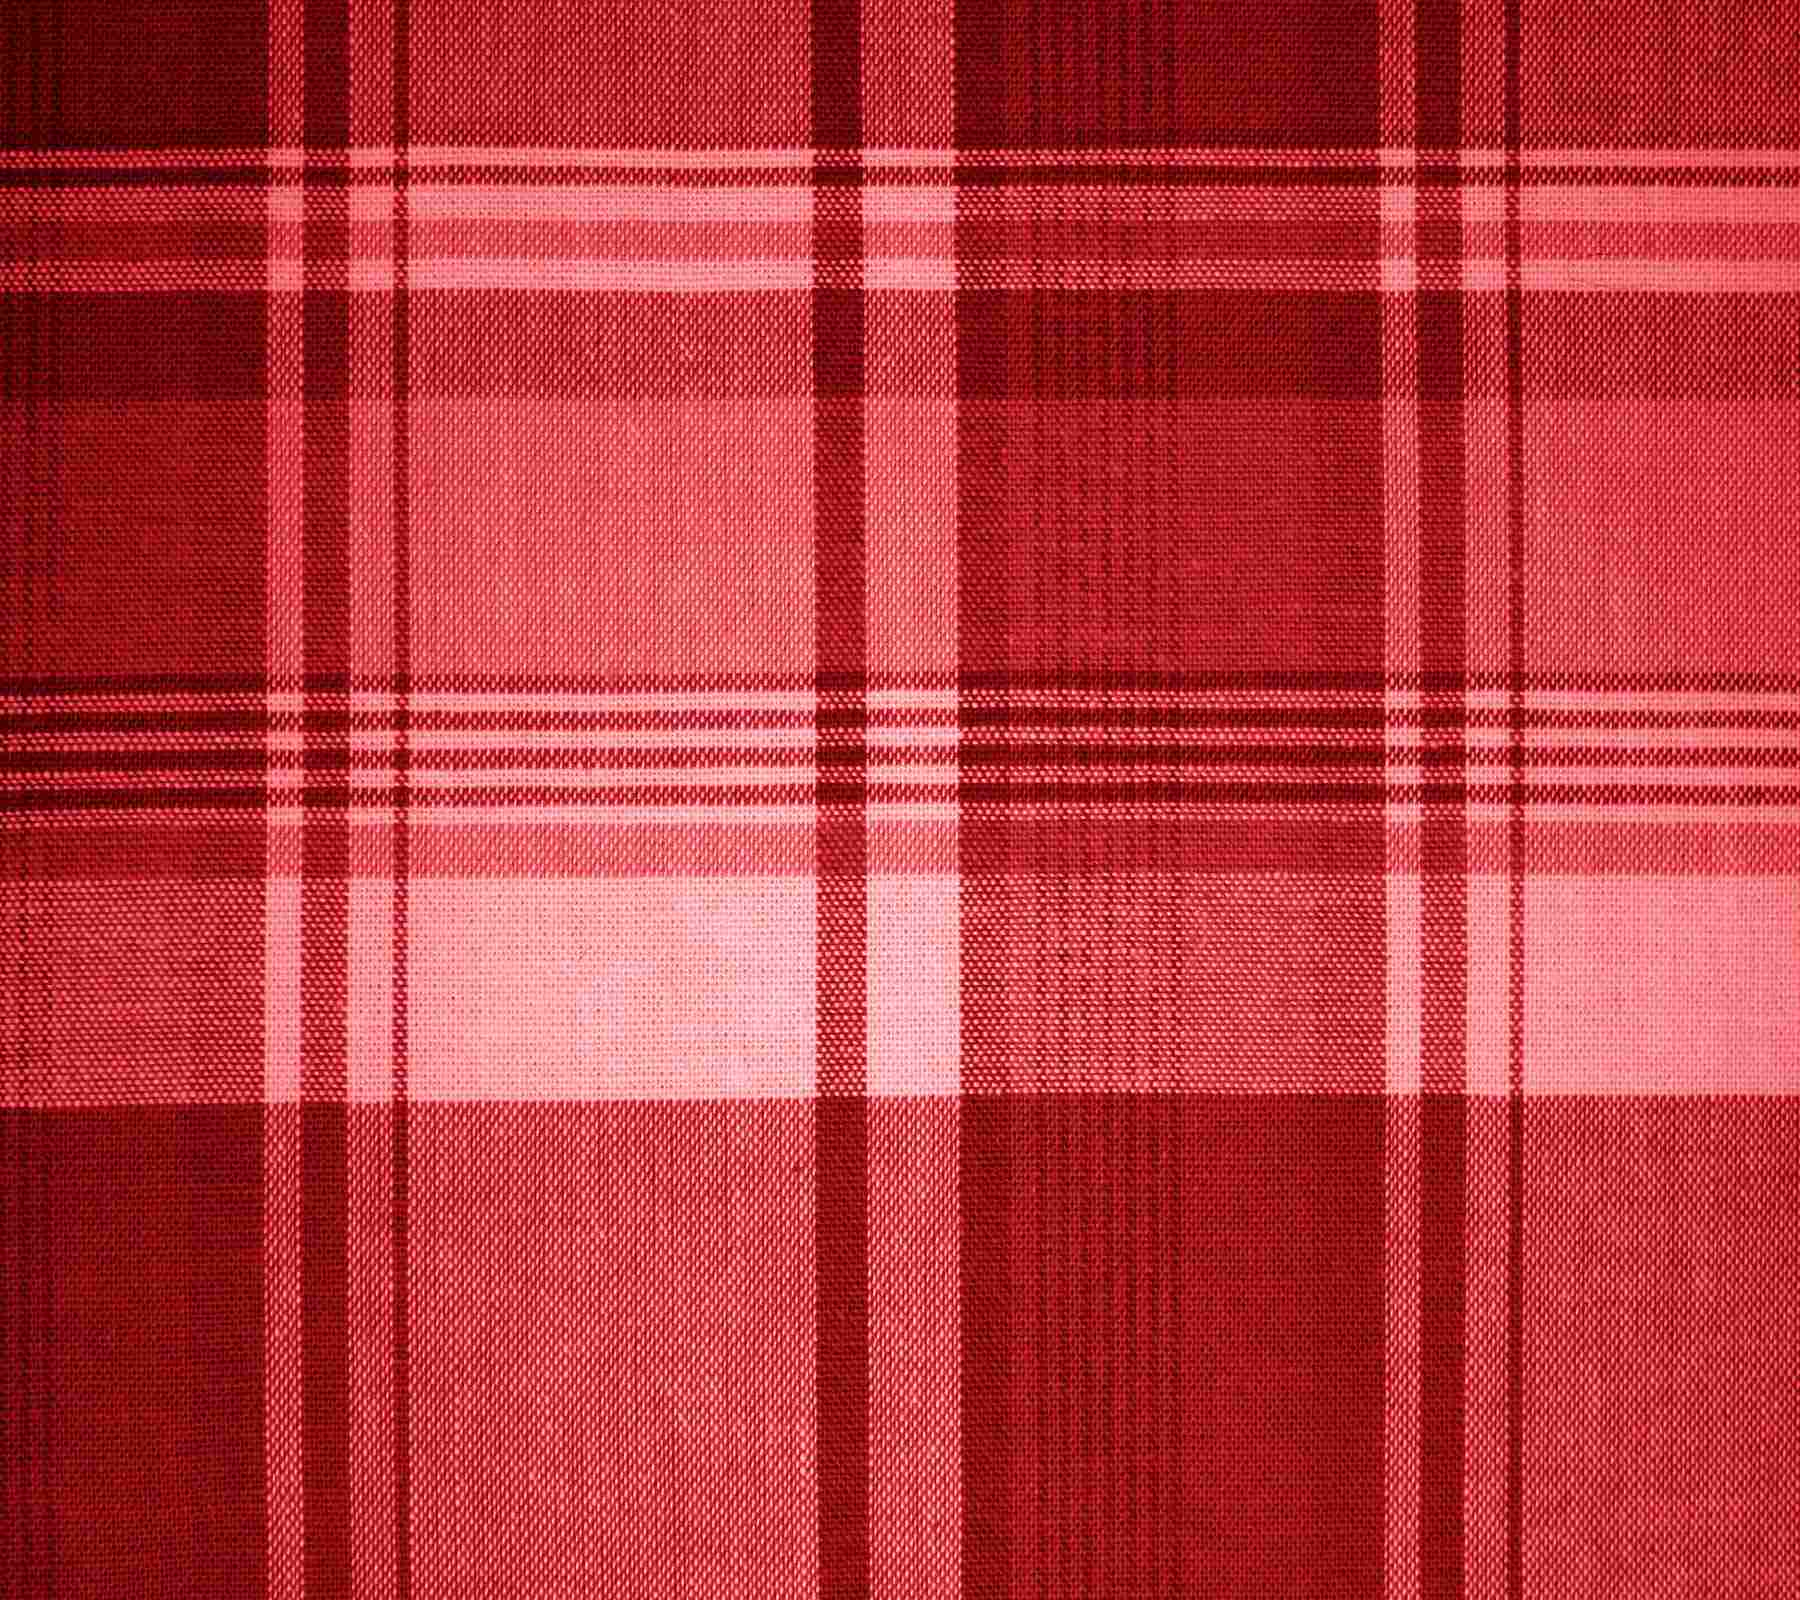 Red Plaid Fabric Background 1800x1600 Background Image